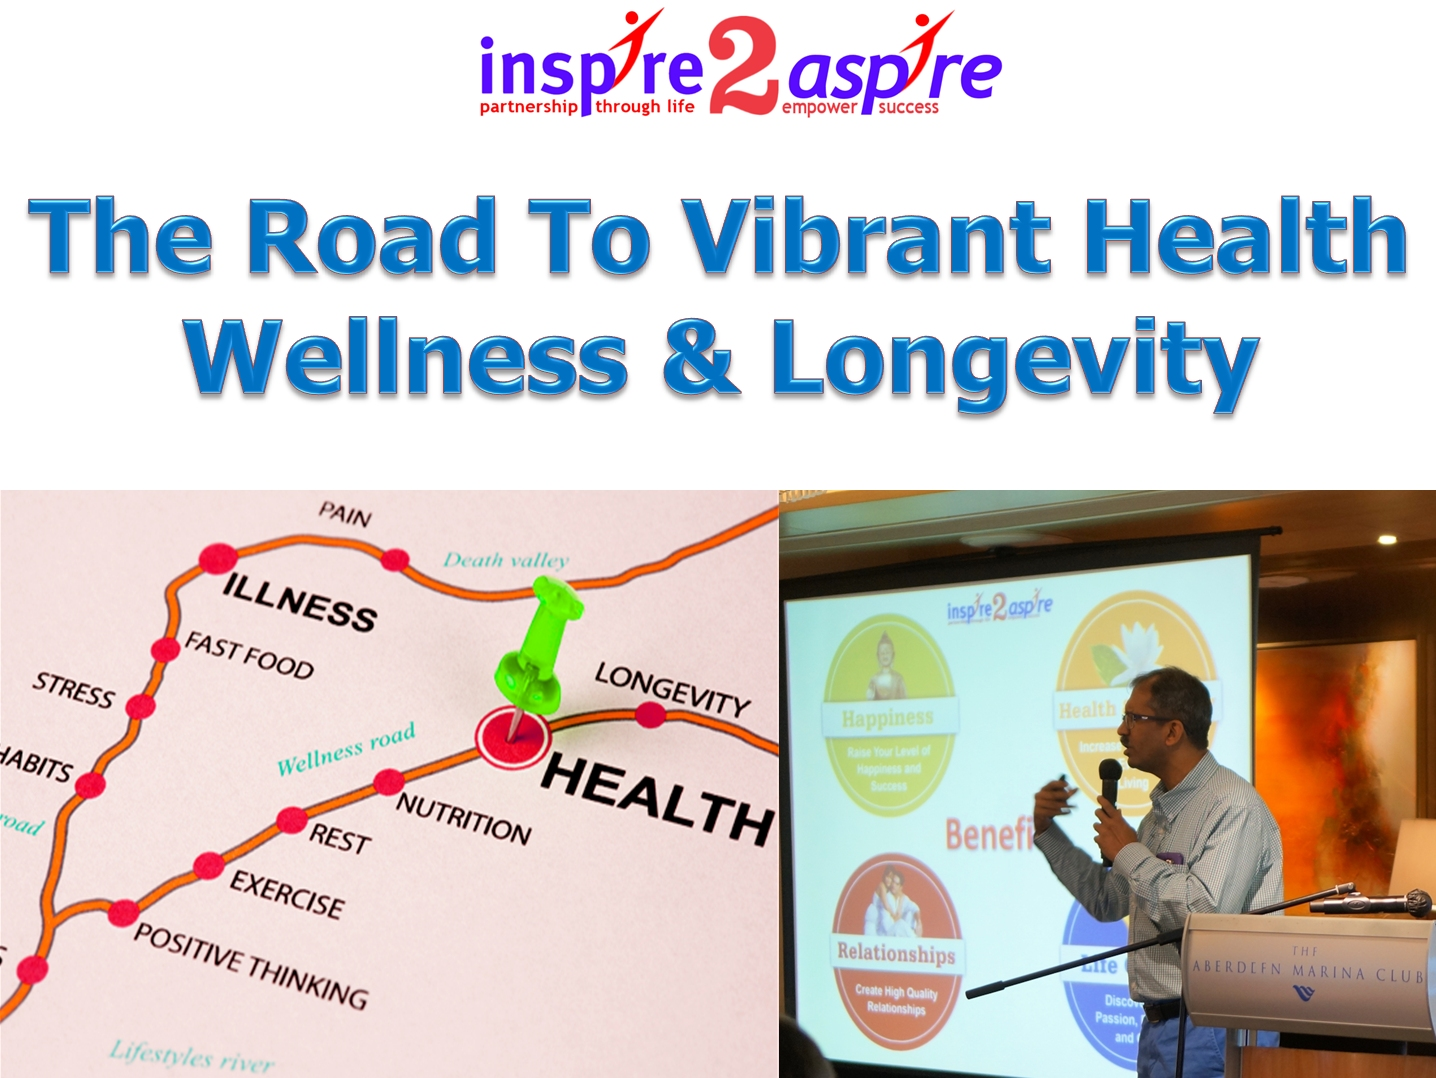 Road To Vibrant Health & Wellness